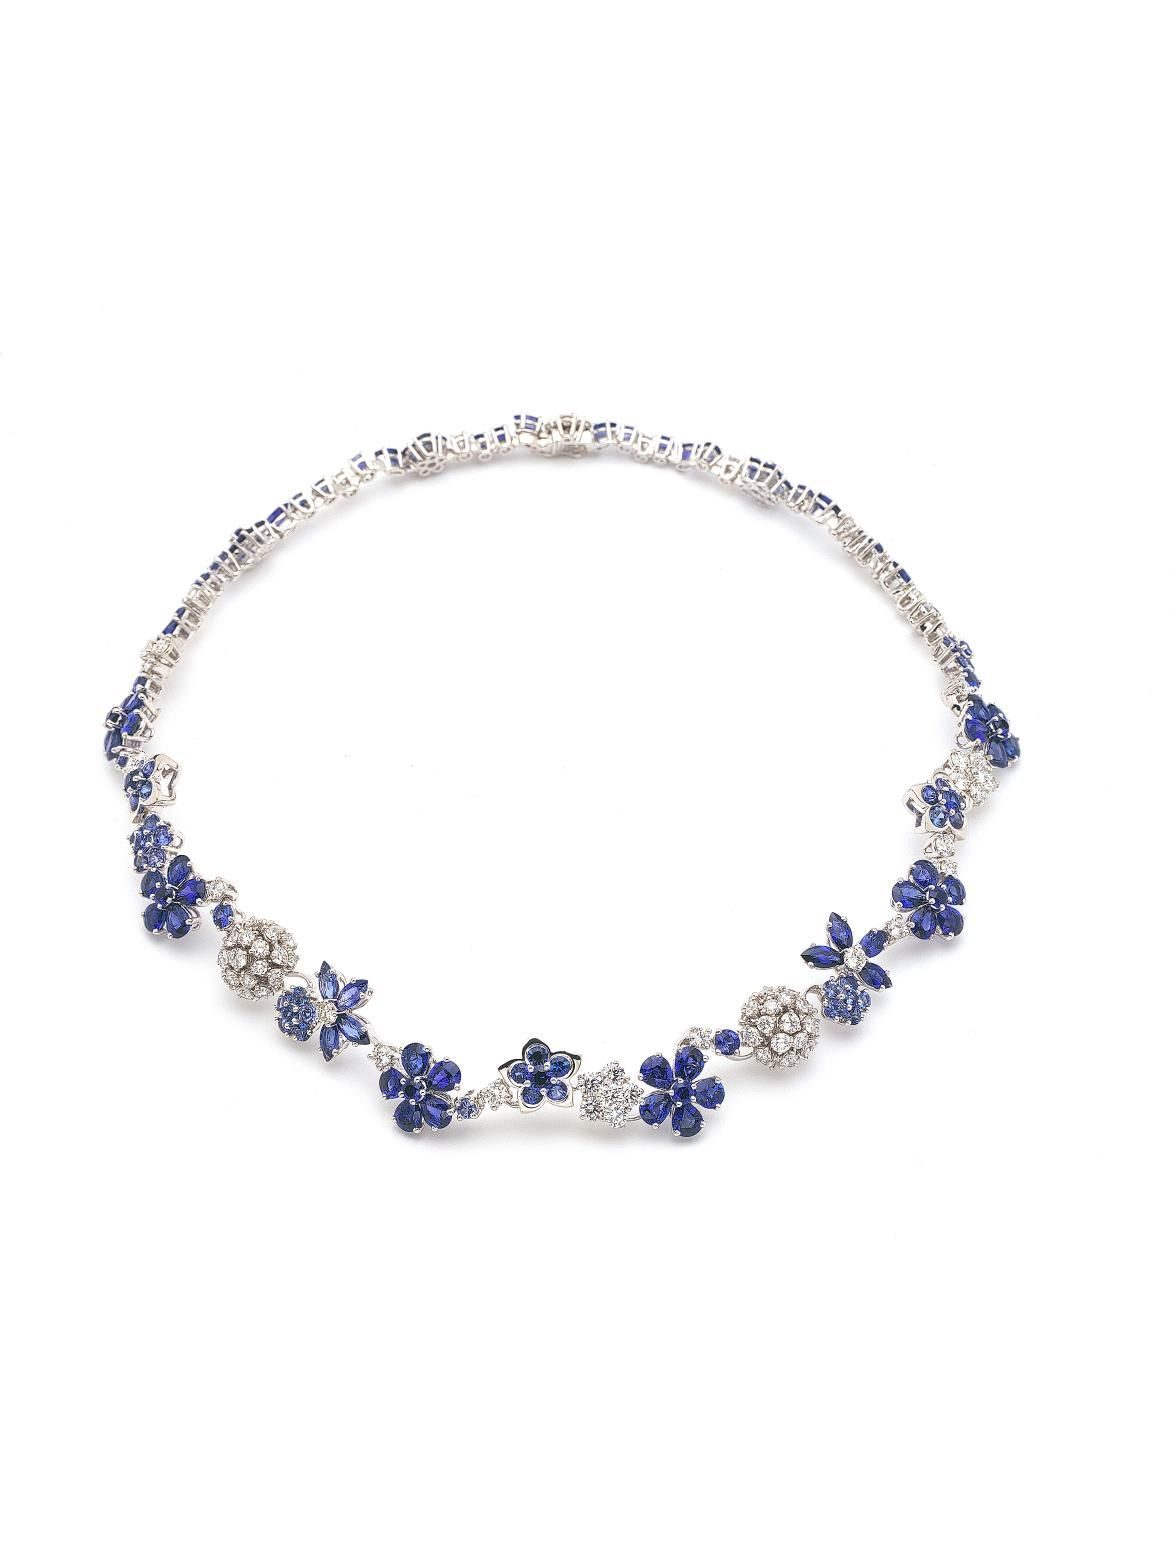 Van cleef u arpels k white gold folie des pres necklace k white